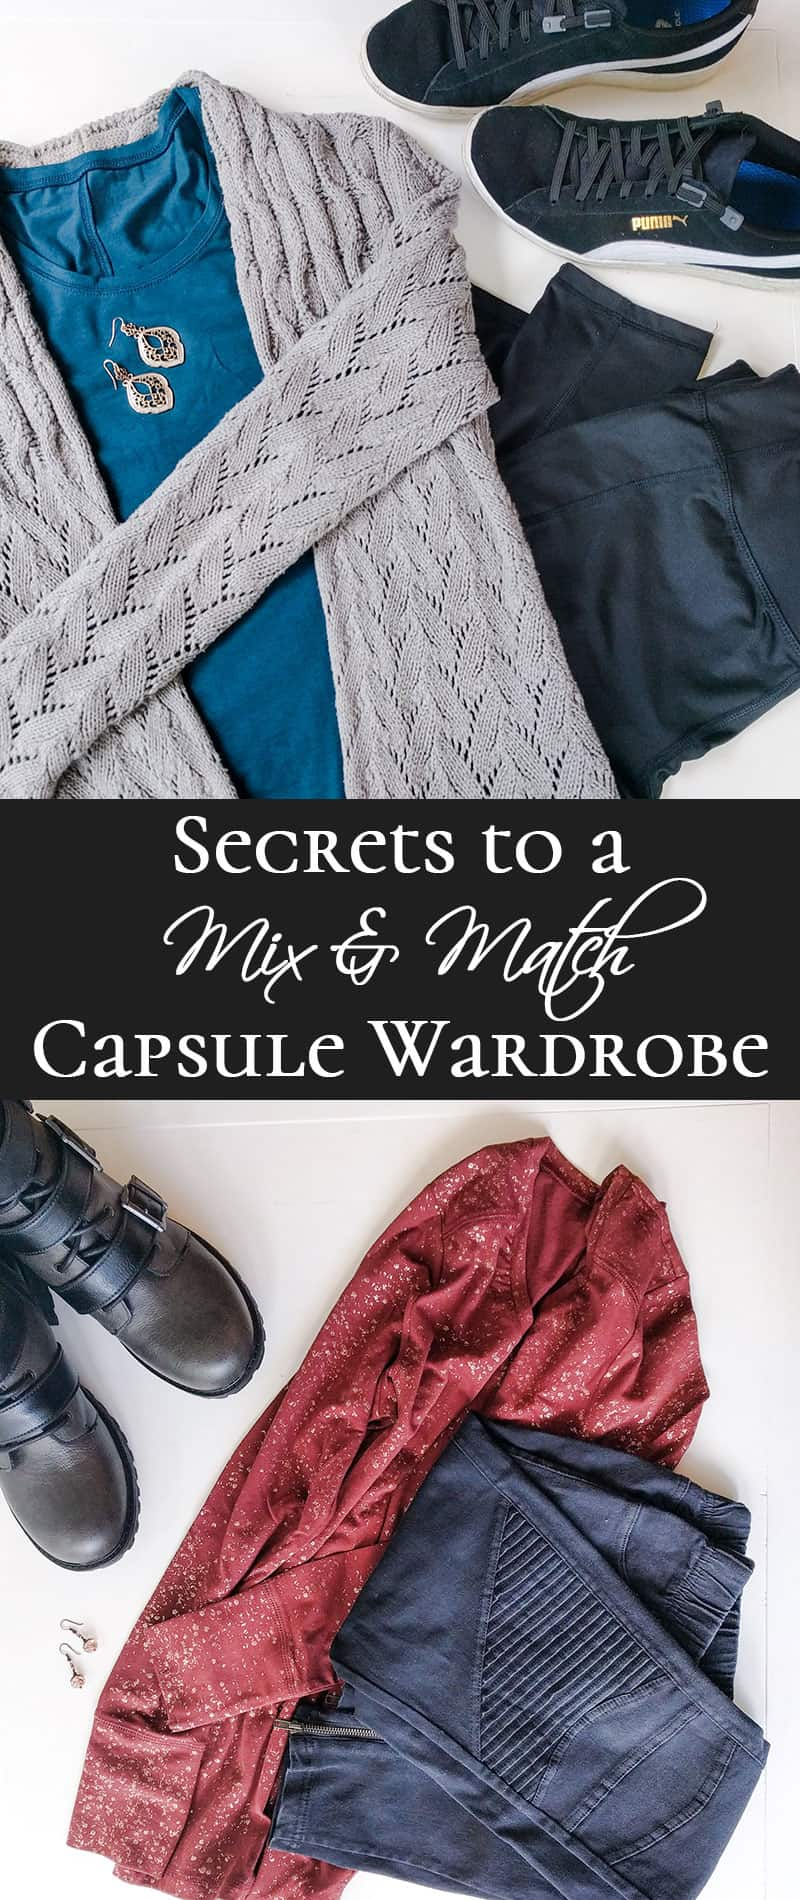 Secrets to a Mix & Match Cold Weather Wardrobe